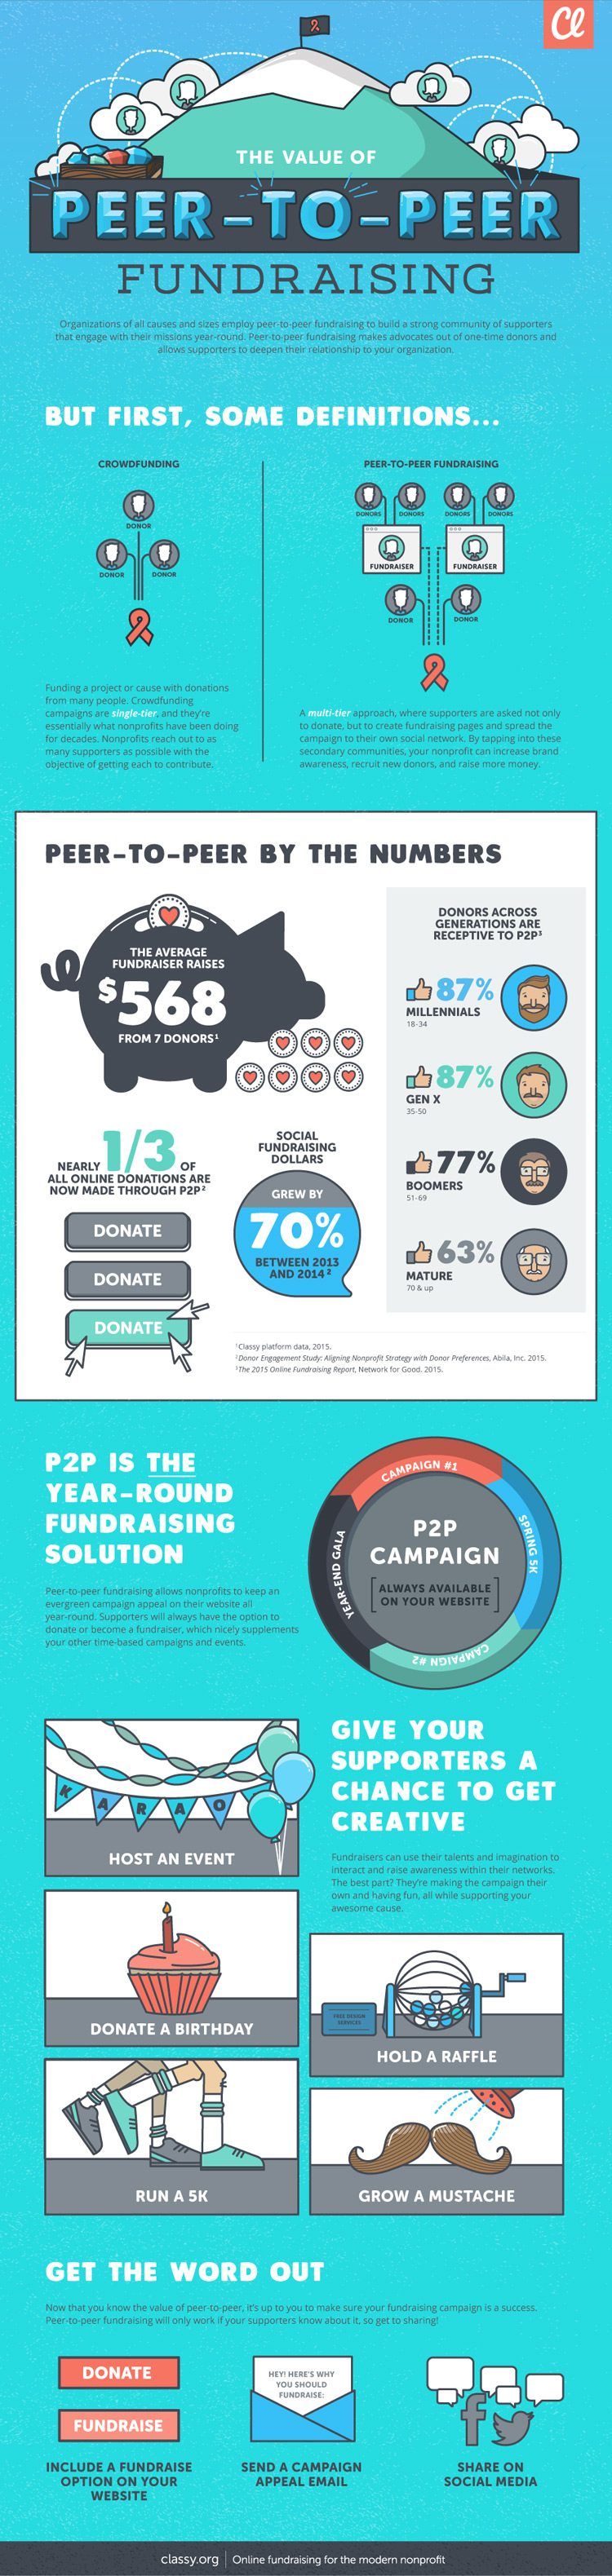 peer to peer fundraising infographic